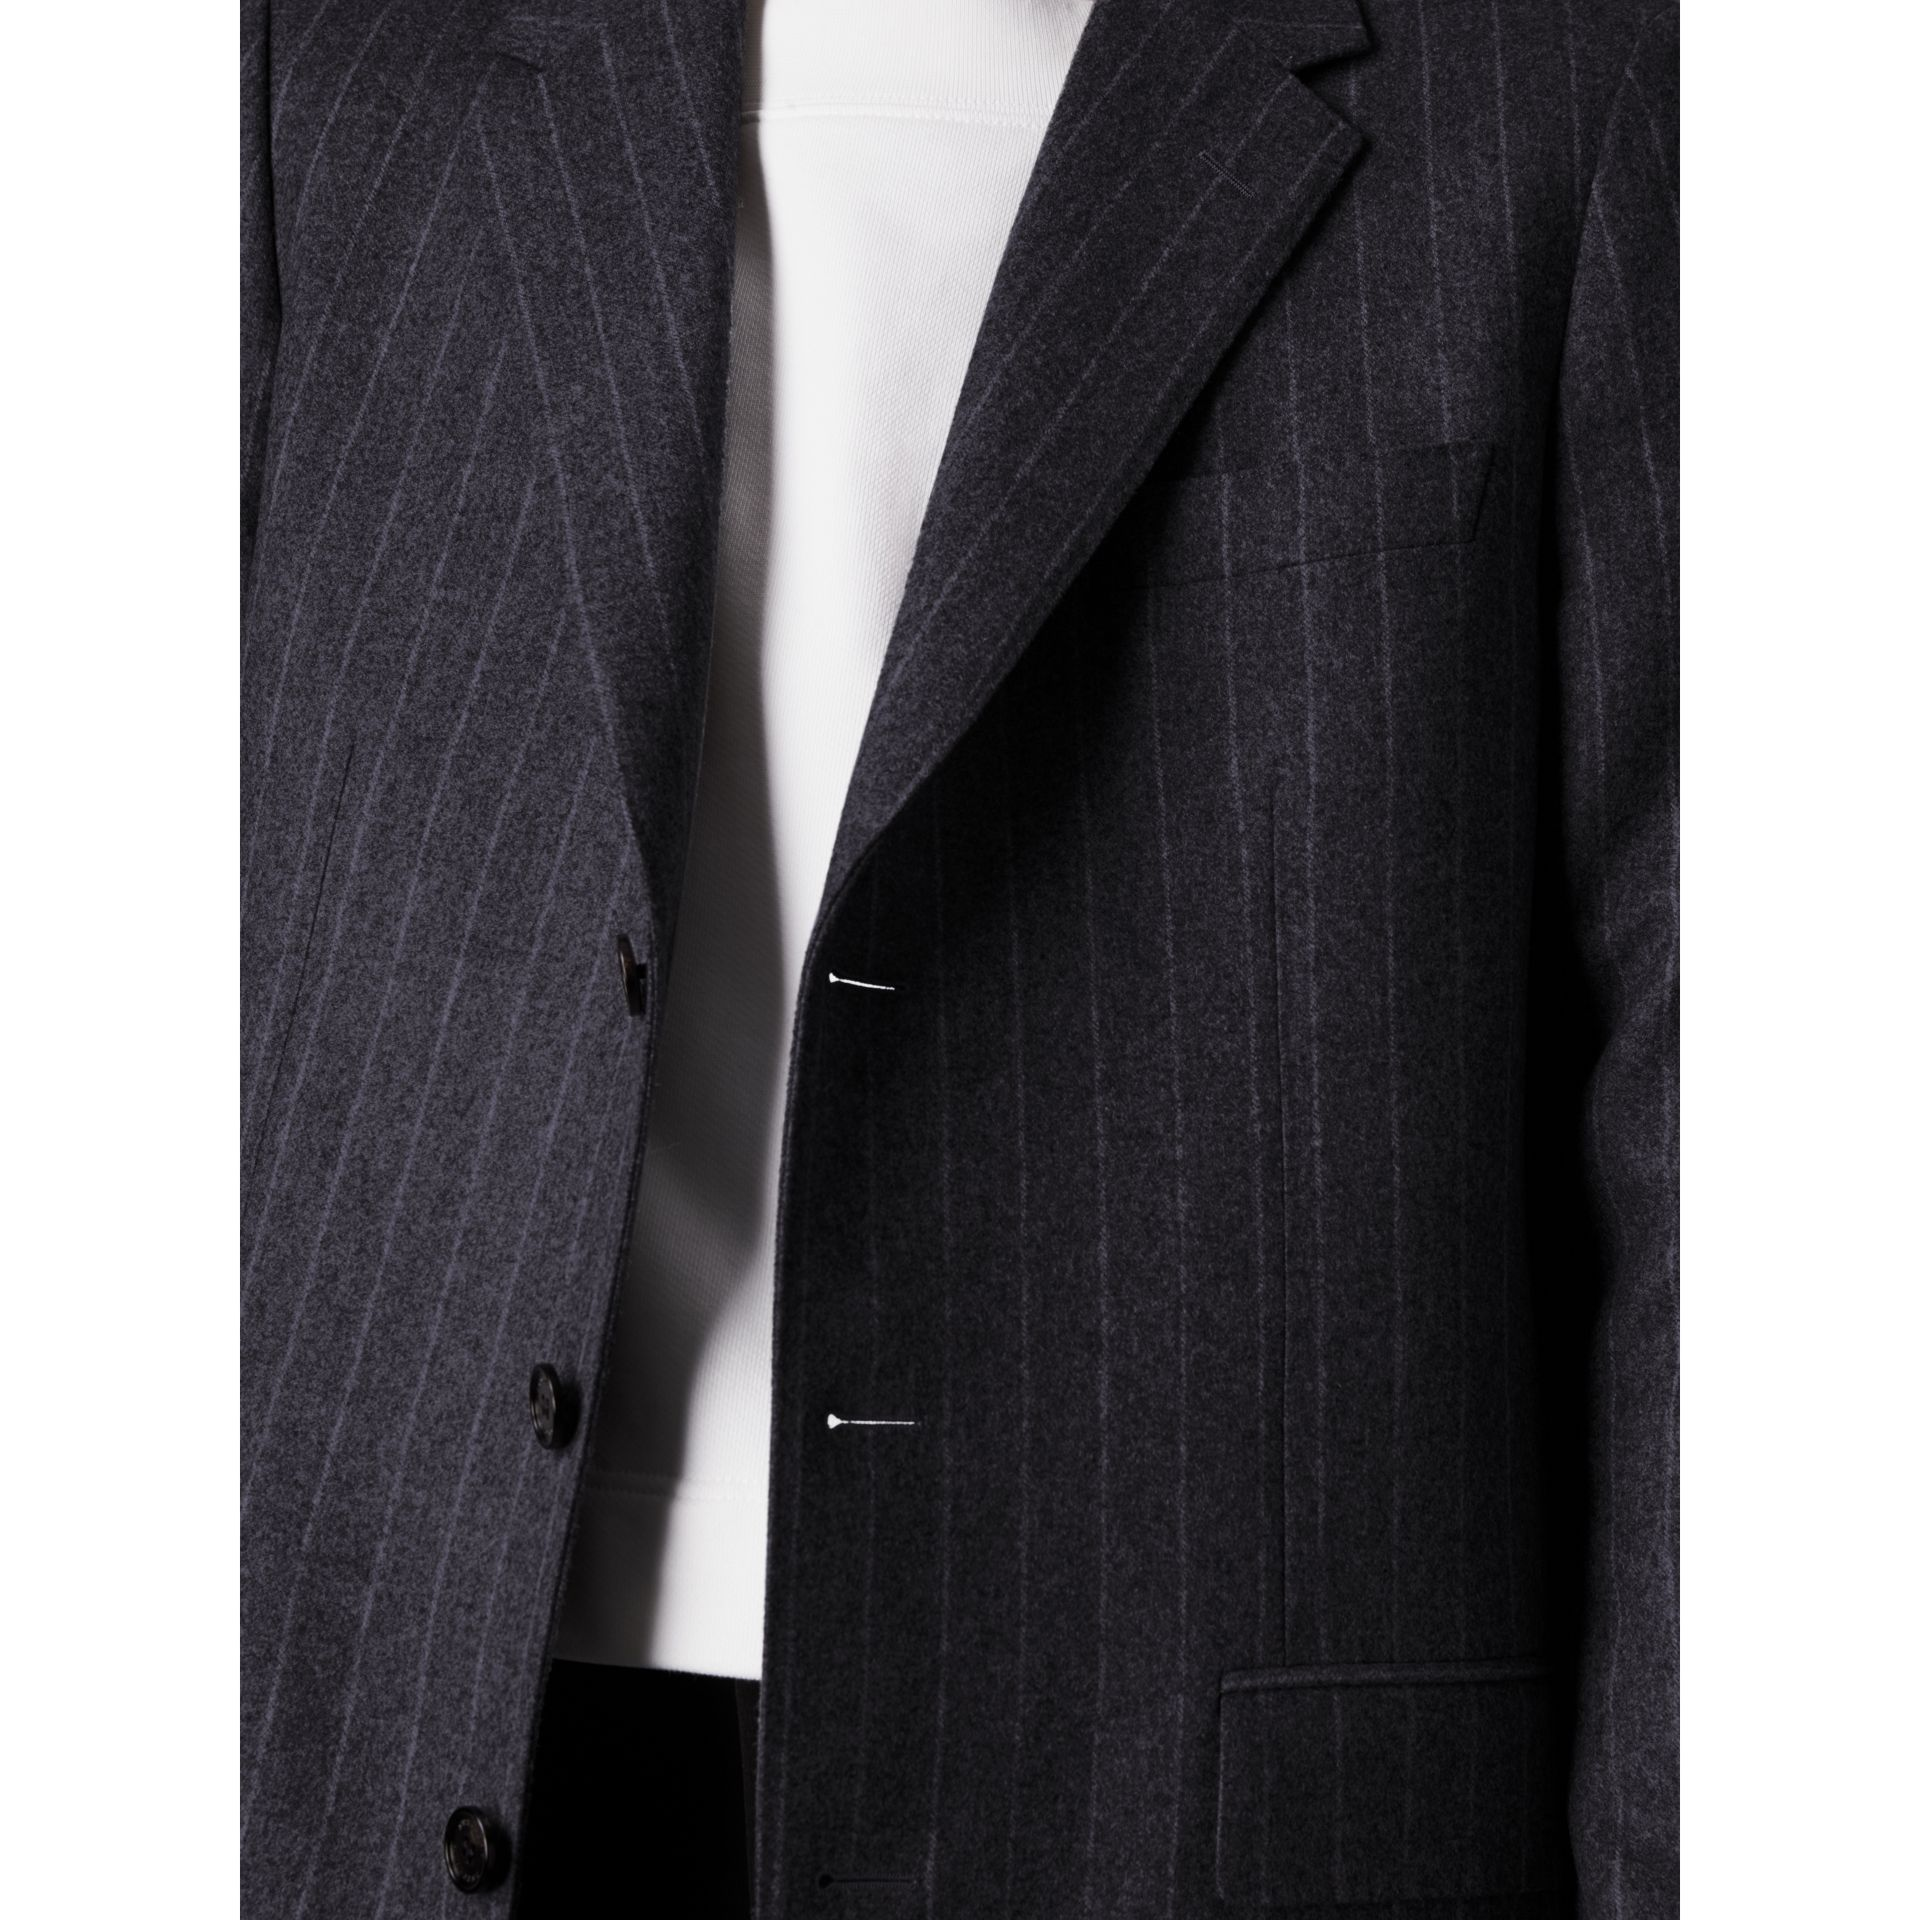 Pinstripe Wool Tailored Jacket in Navy - Men | Burberry Australia - gallery image 2